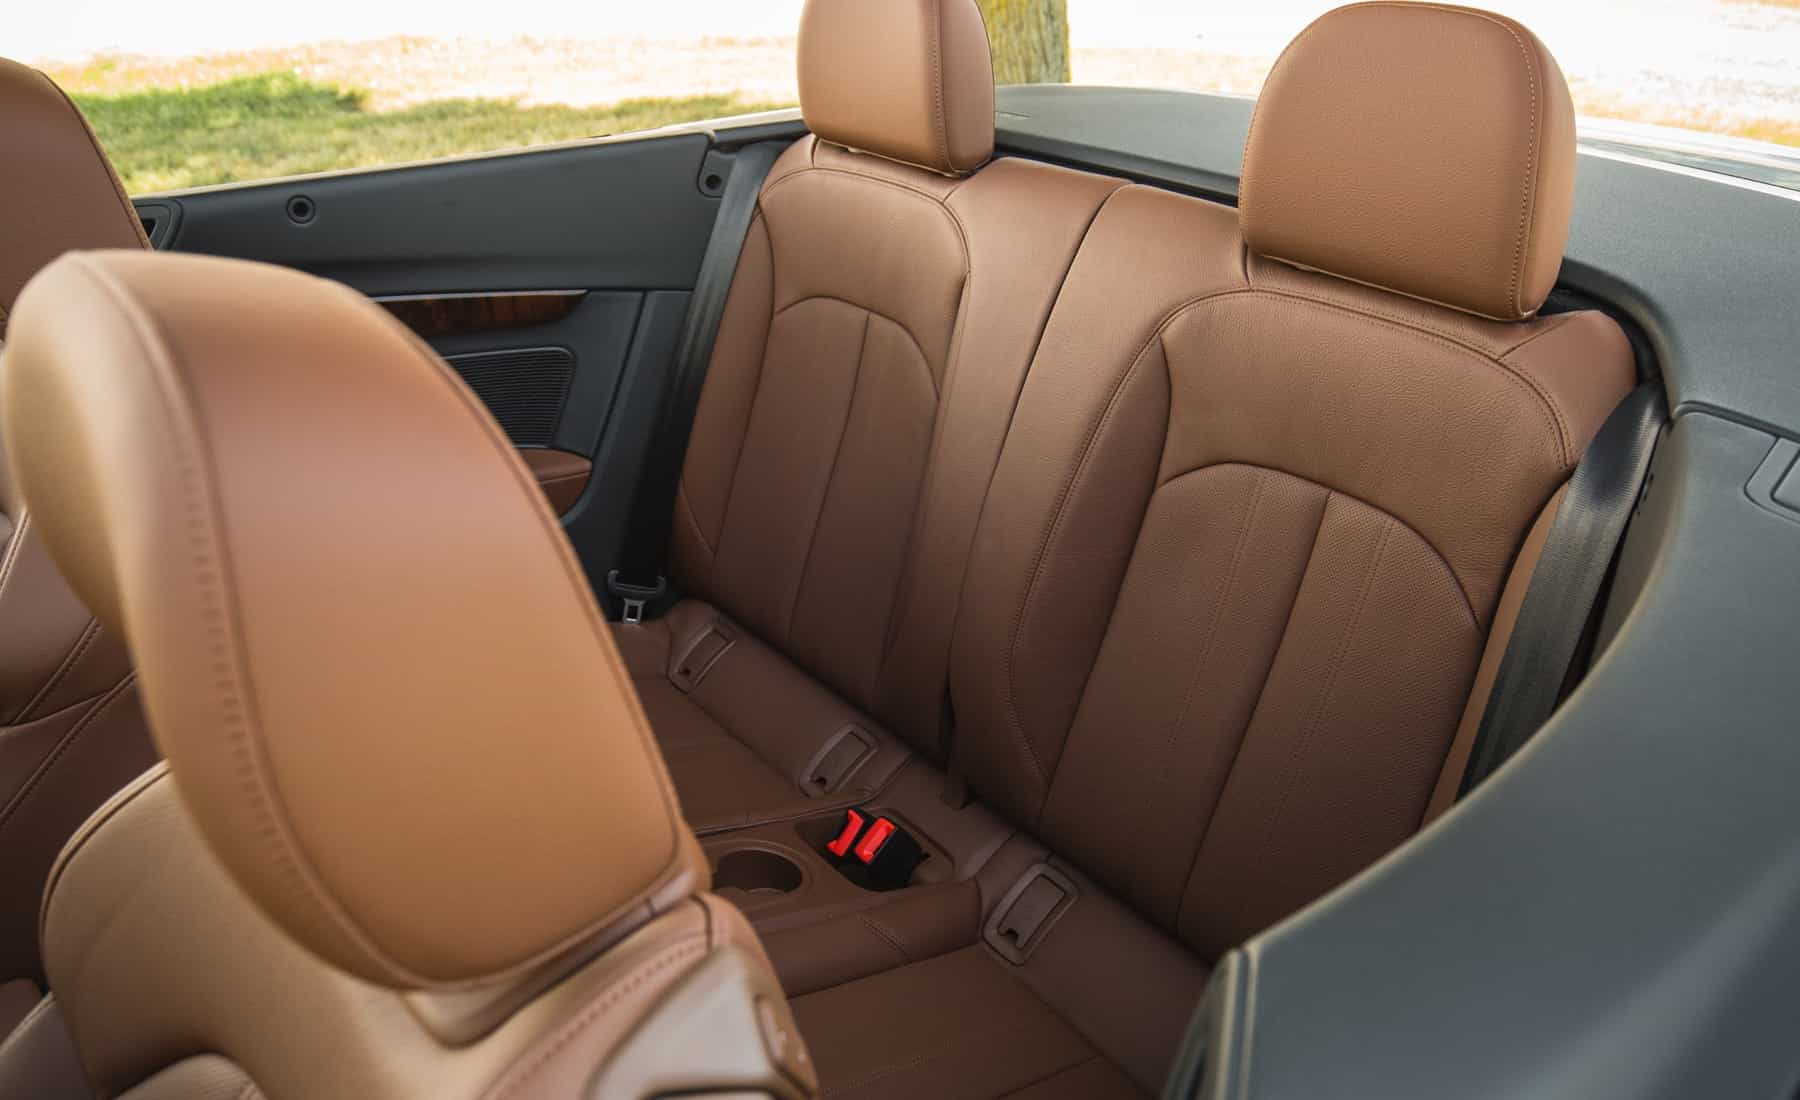 2018 Audi A5 Cabriolet Interior Seats Rear (View 27 of 45)